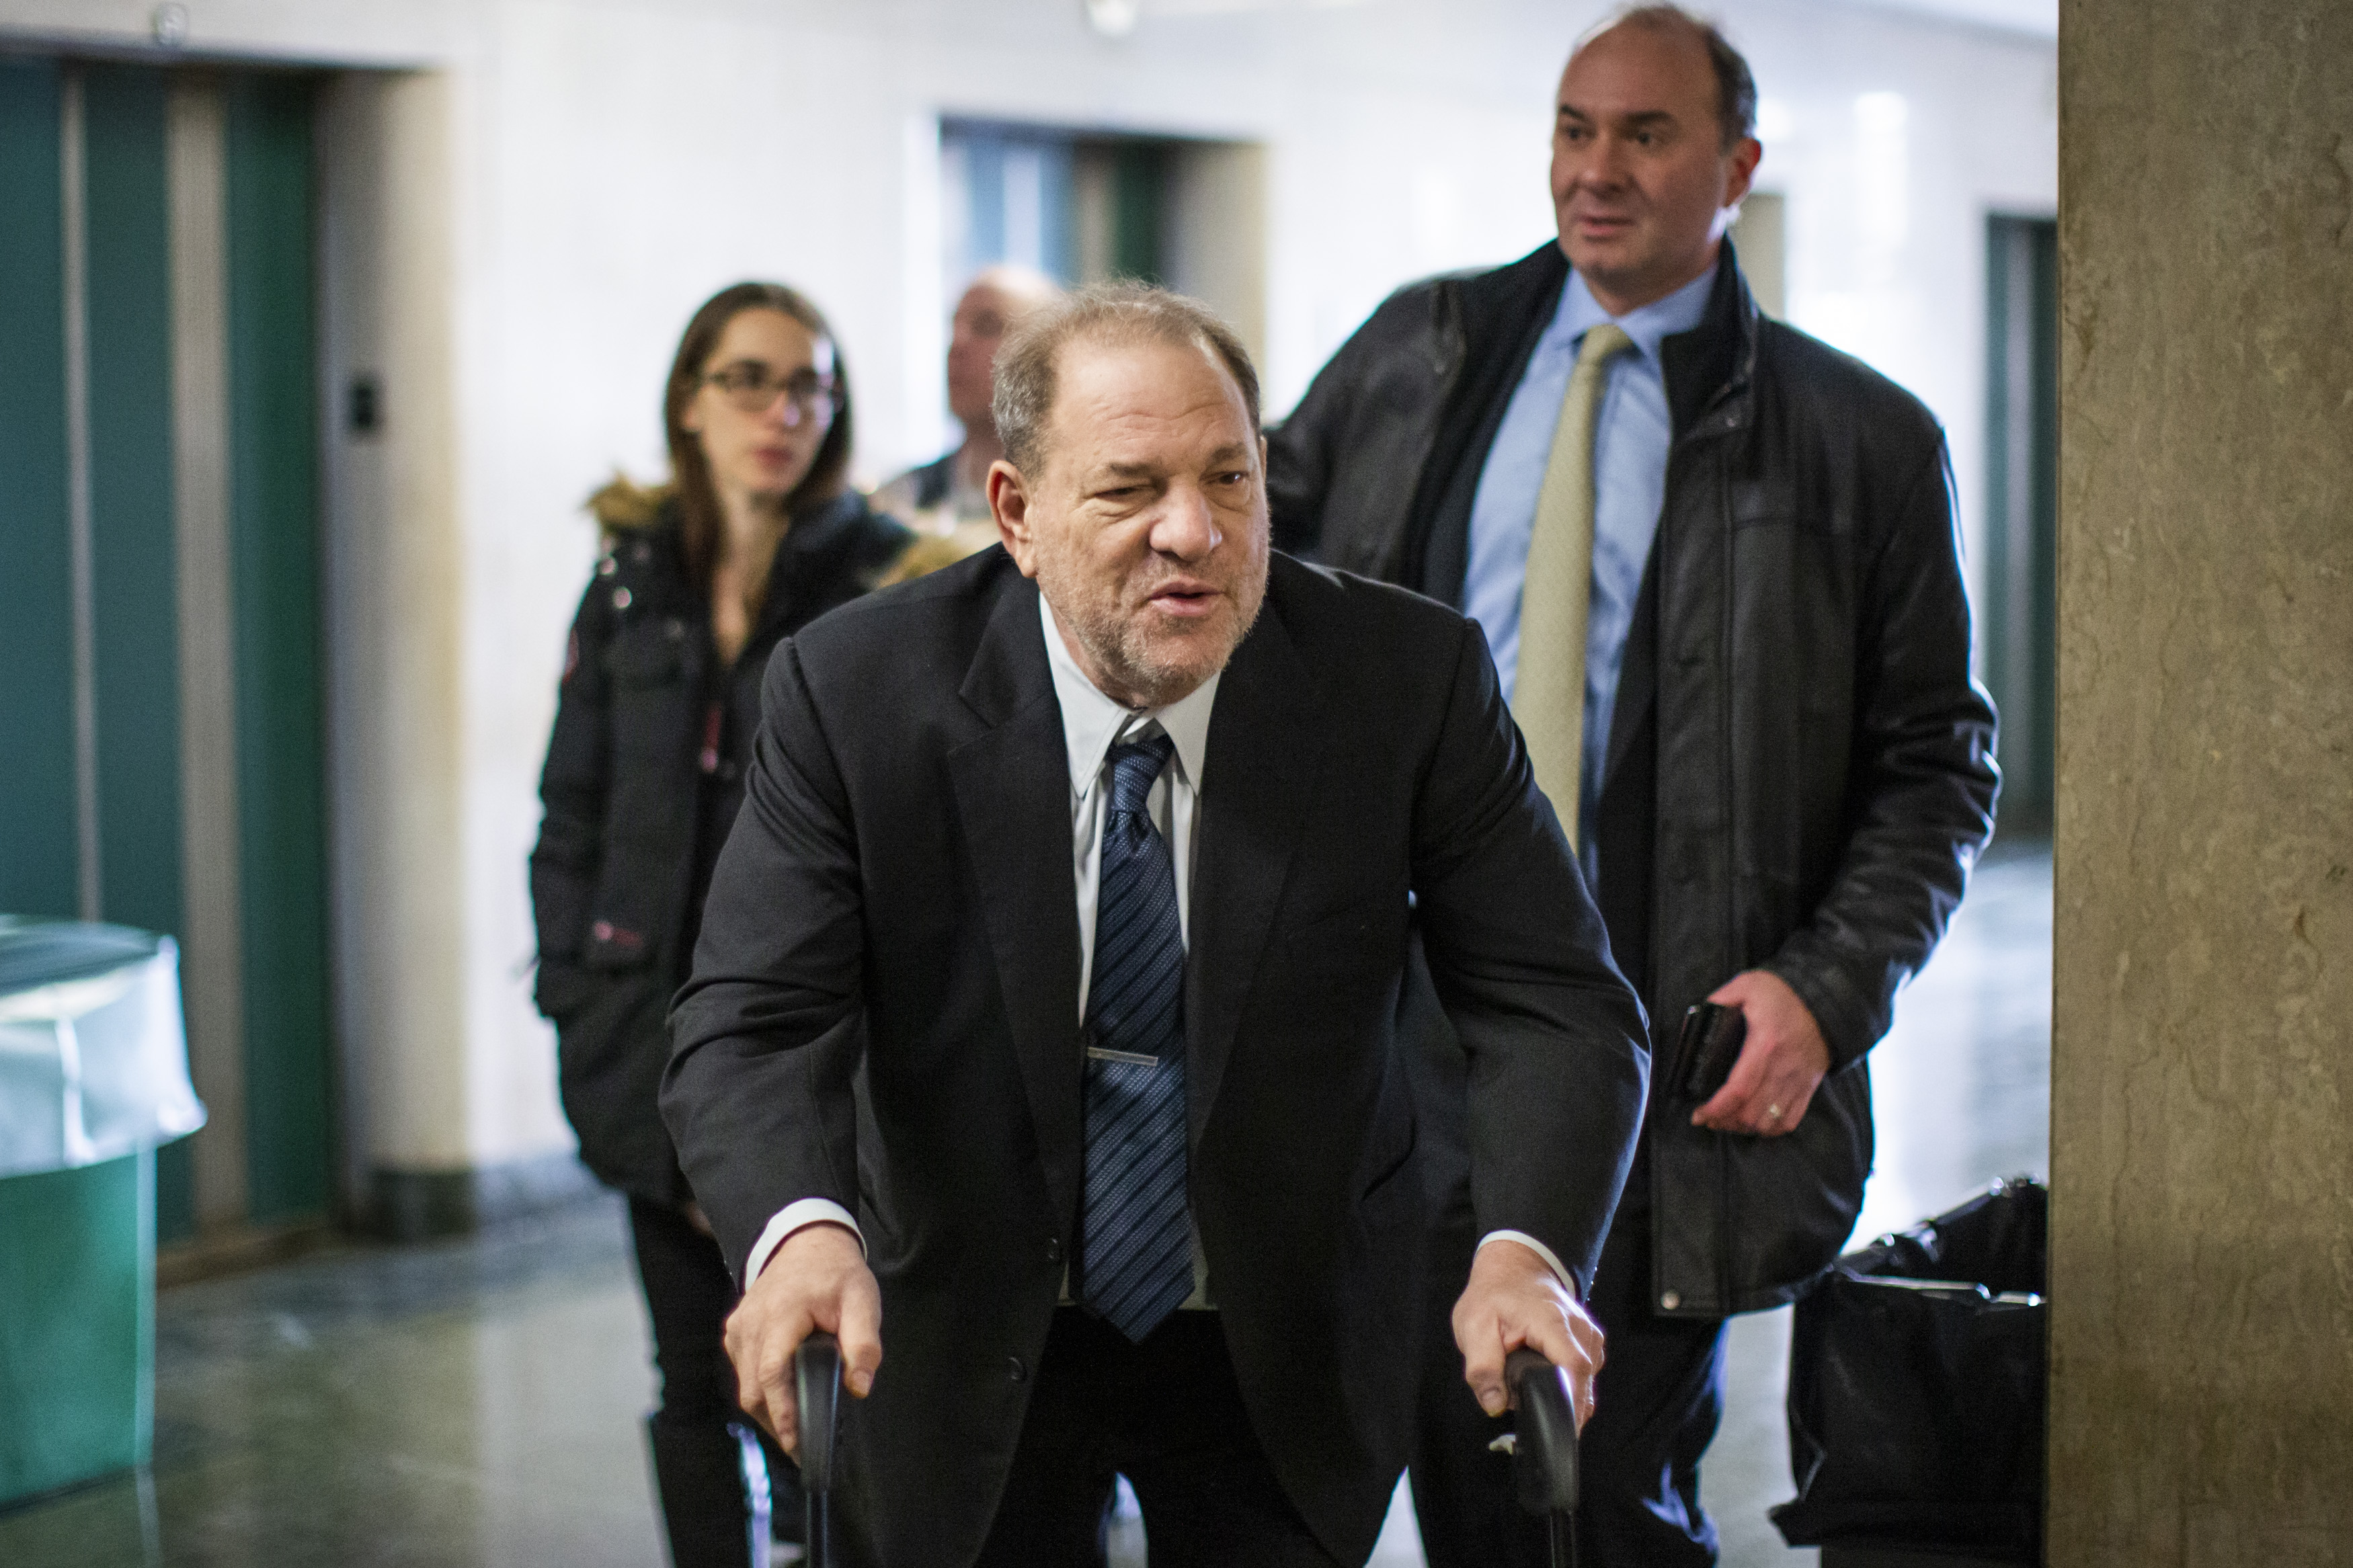 Film producer Harvey Weinstein arrives at the courtroom for his sexual assault trial at Manhattan criminal court on February 3, 2020 in New York City. Weinstein, a movie producer whose alleged sexual misconduct helped spark the #MeToo movement, pleaded not guilty on five counts of rape and sexual assault against two unnamed women and faces a possible life sentence in prison. (Photo by Eduardo Munoz Alvarez/Getty Images)